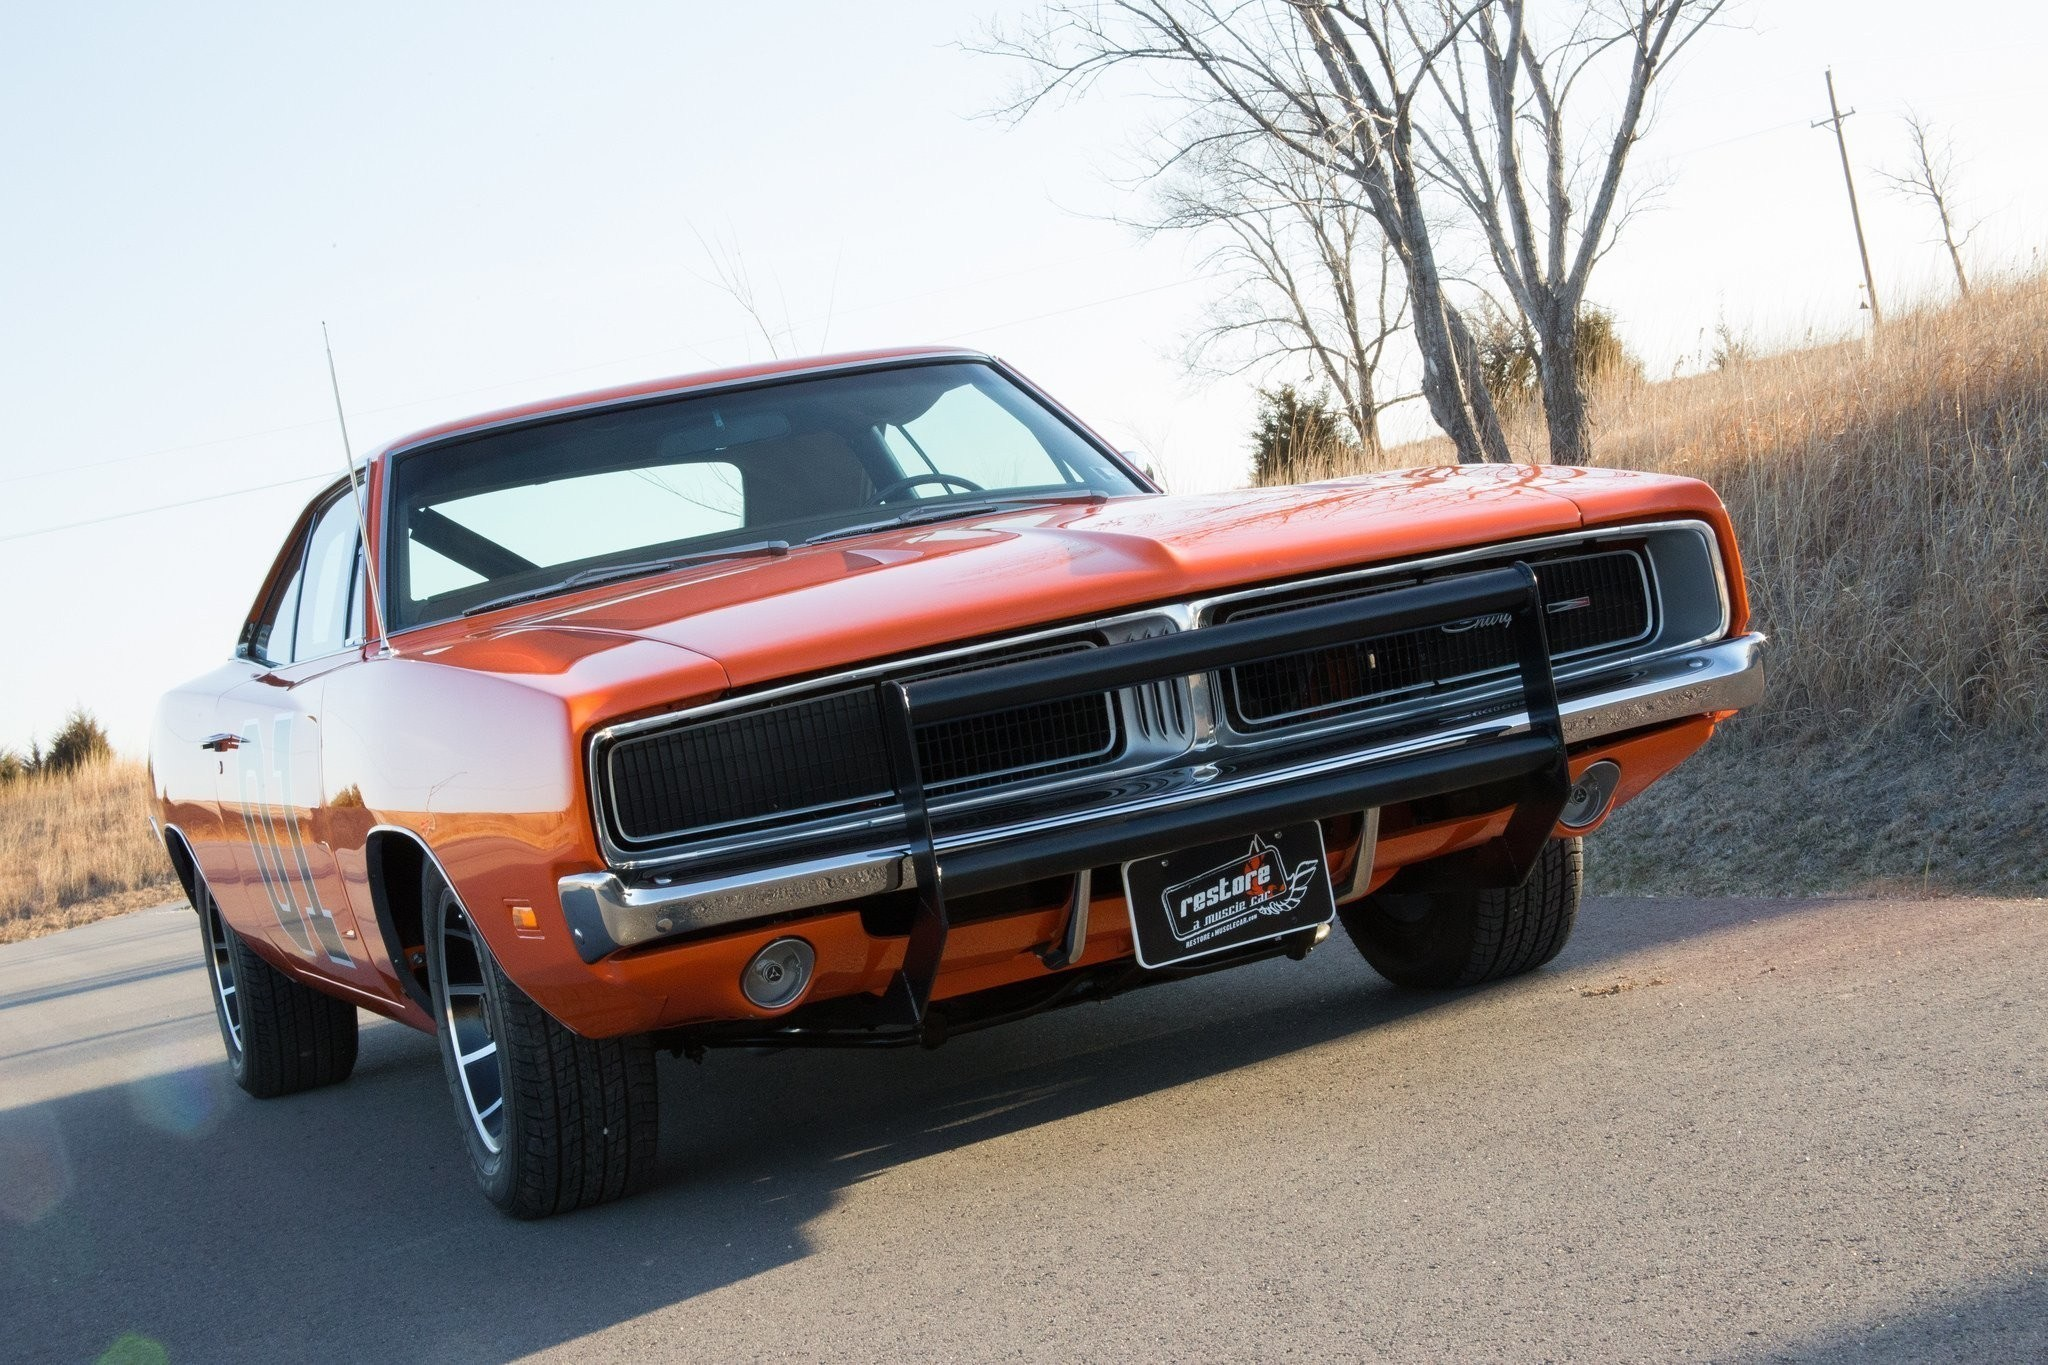 2048x1365 general lee wallpaper 59 images photo dodge charger